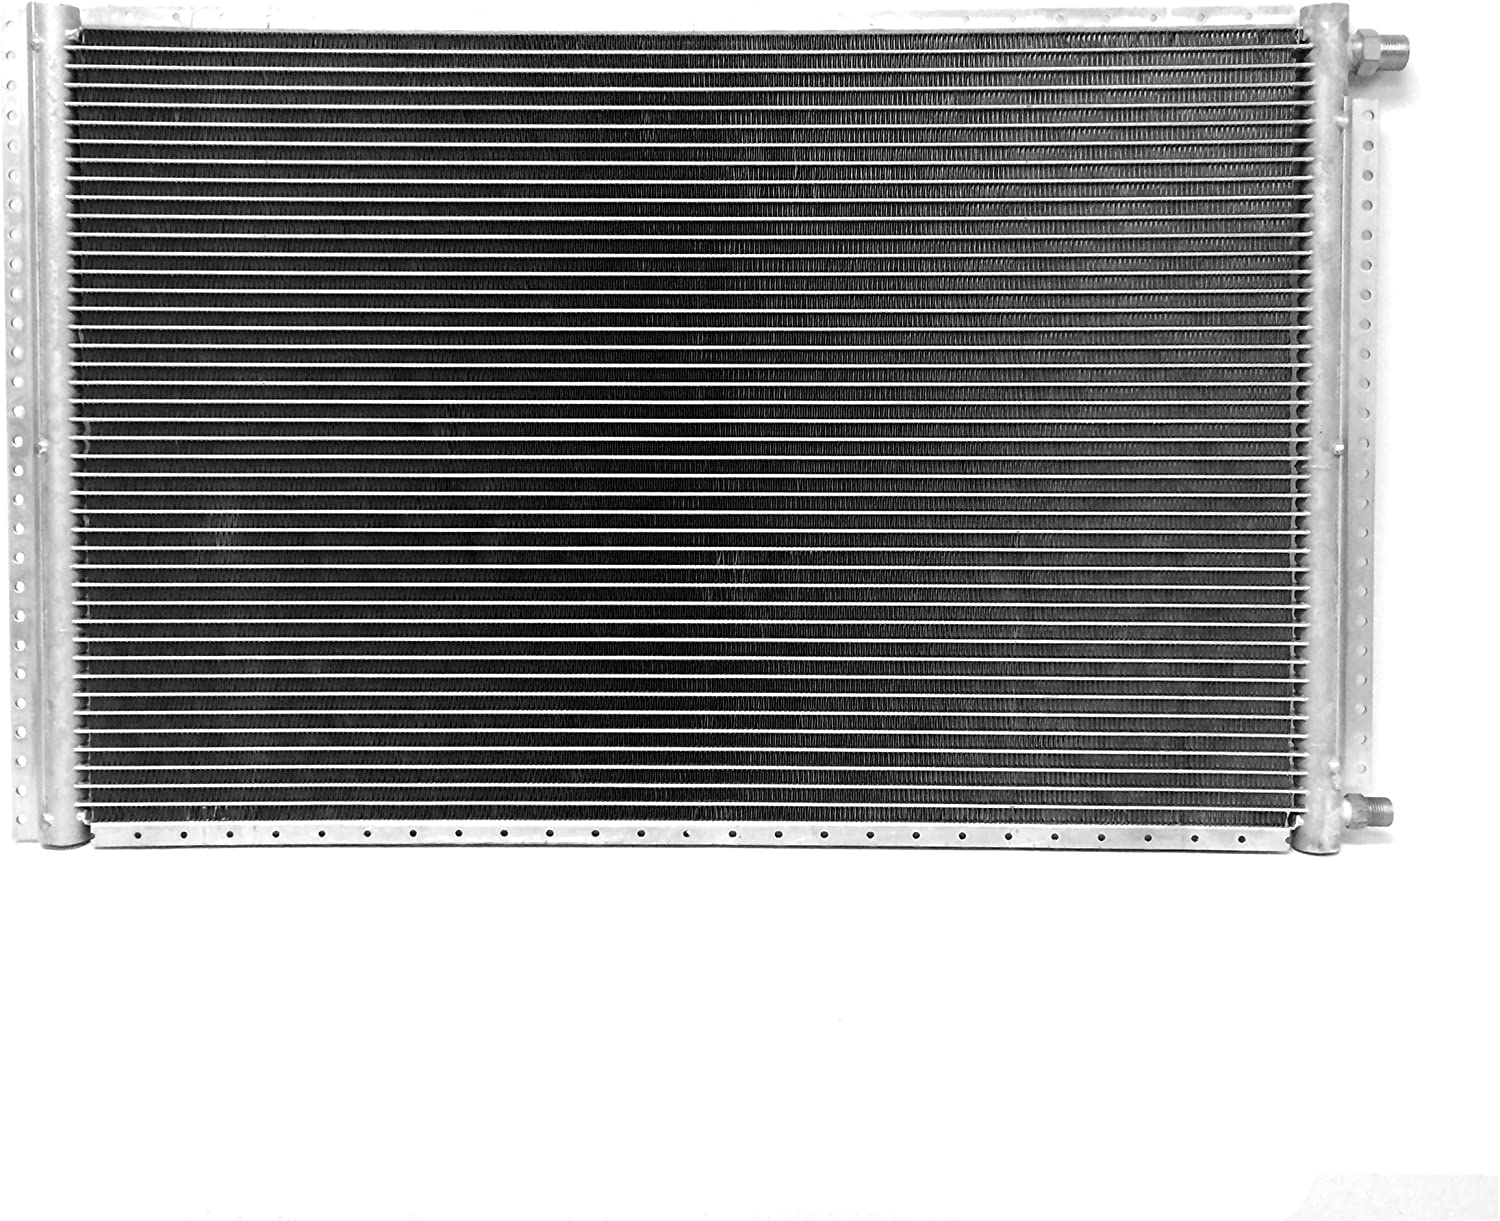 CNFP1828 AC A//C Universal Condenser Parallel Flow 18 x 28 O-ring #6 /& #8